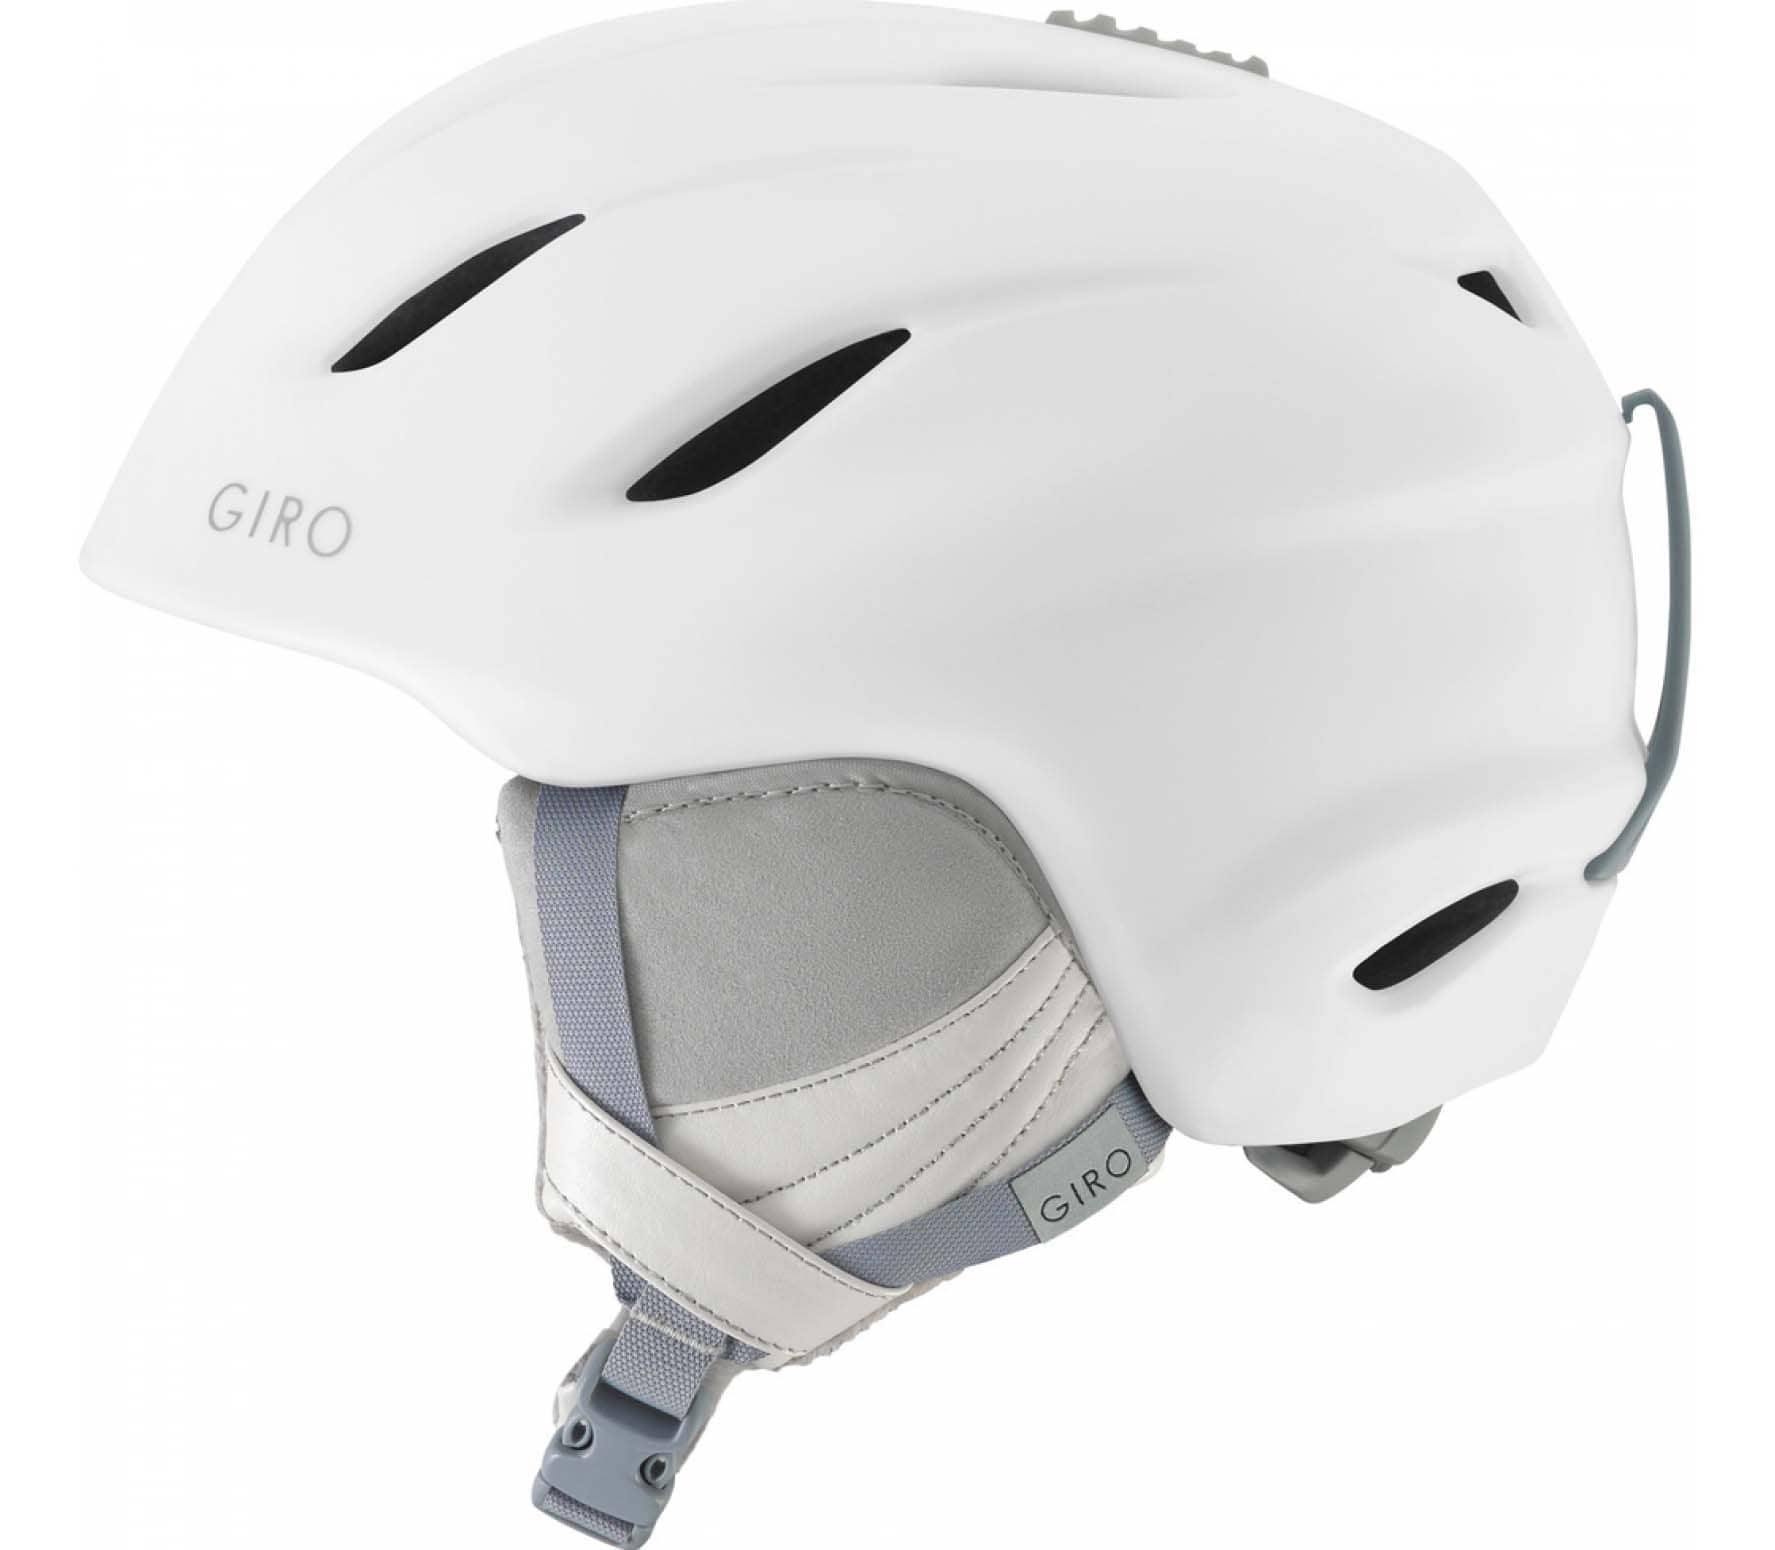 Giro - Era women's skis helmet (white)